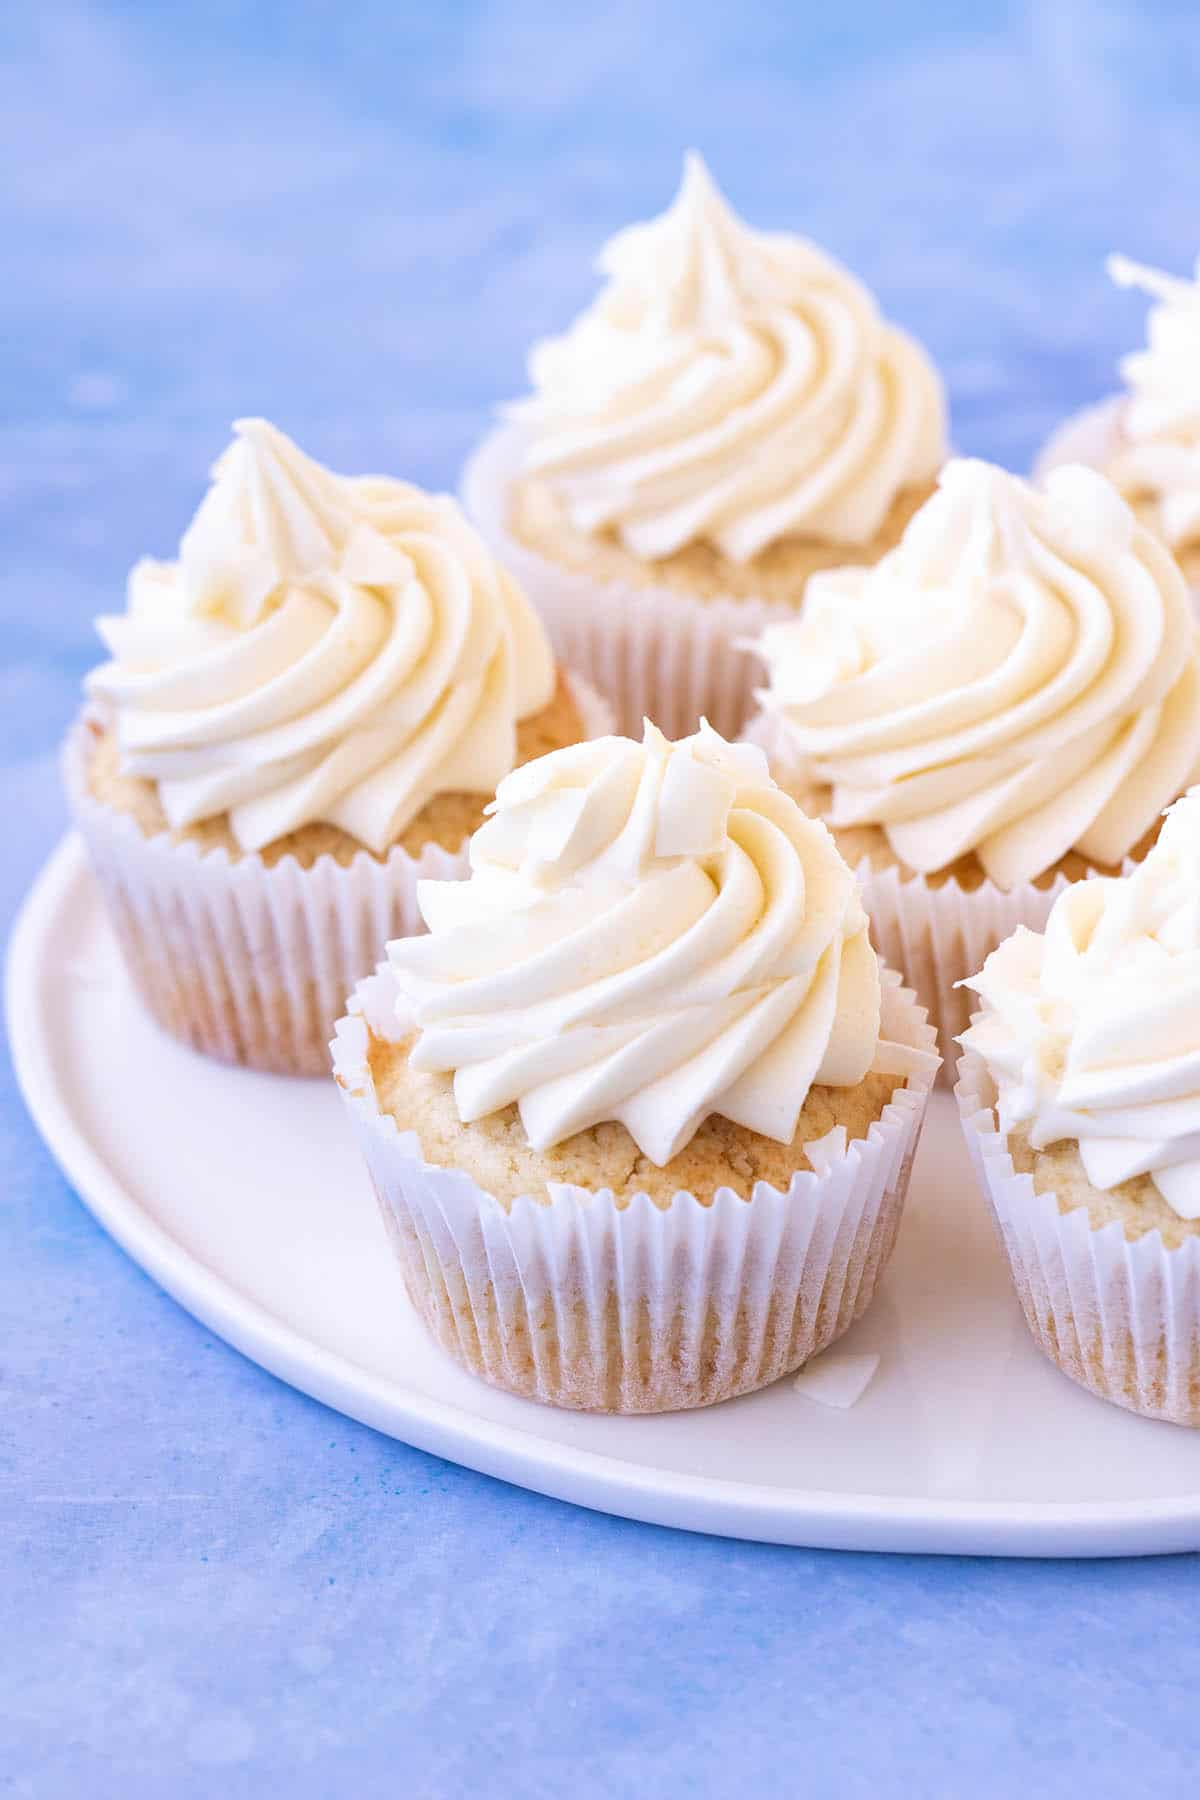 A plate of beautifully decorated Coconut Cupcakes on a white plate